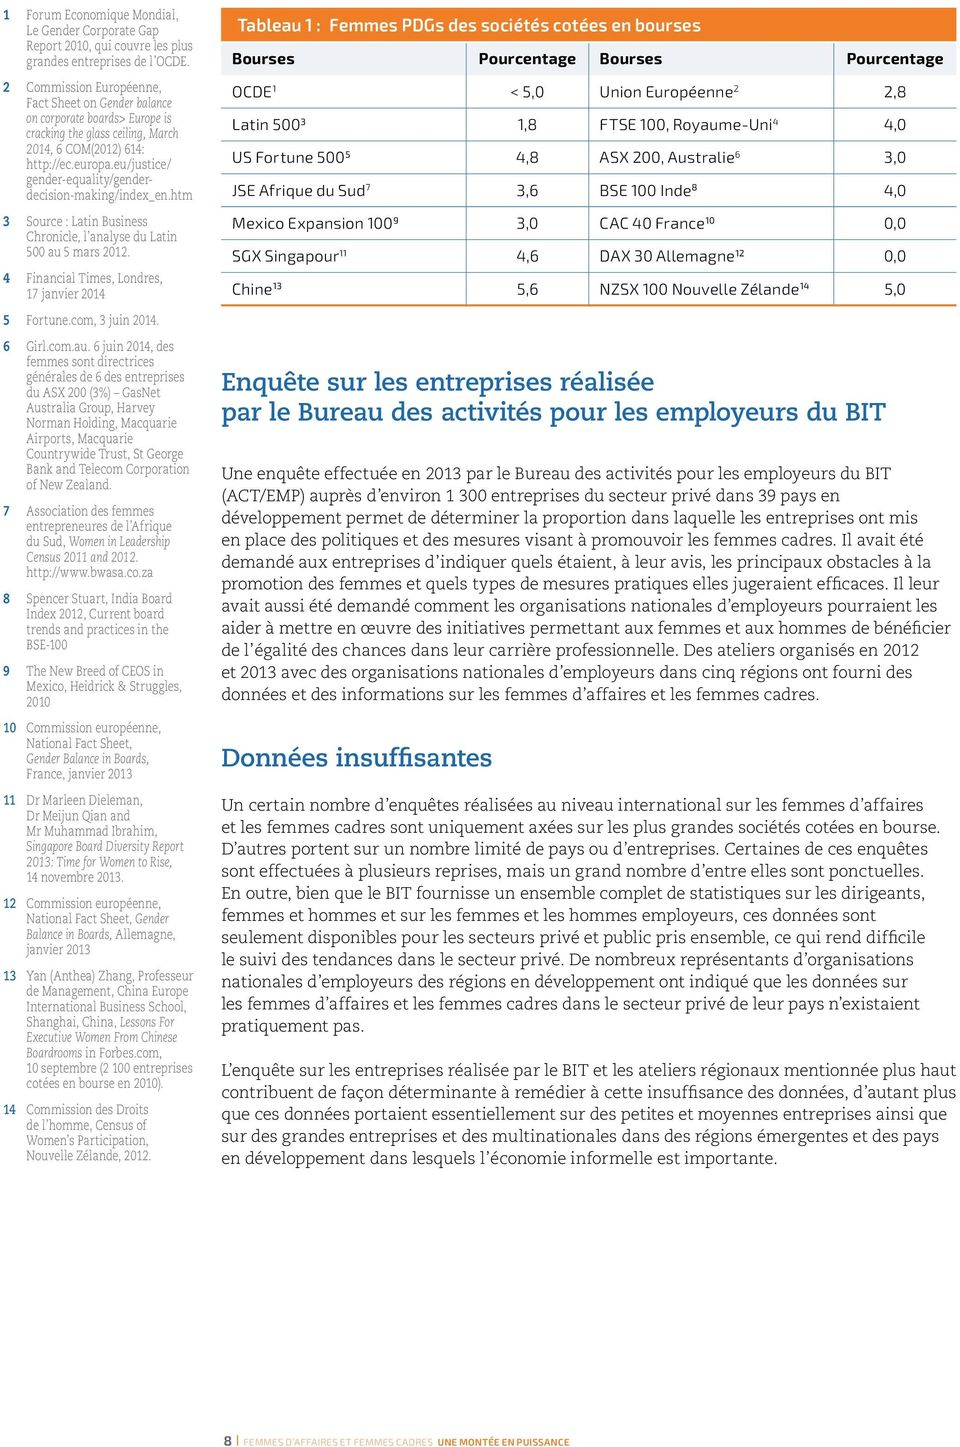 eu/justice/ gender-equality/genderdecision-making/index_en.htm 3 Source : Latin Business Chronicle, l analyse du Latin 500 au 5 mars 2012. 4 Financial Times, Londres, 17 janvier 2014 5 Fortune.